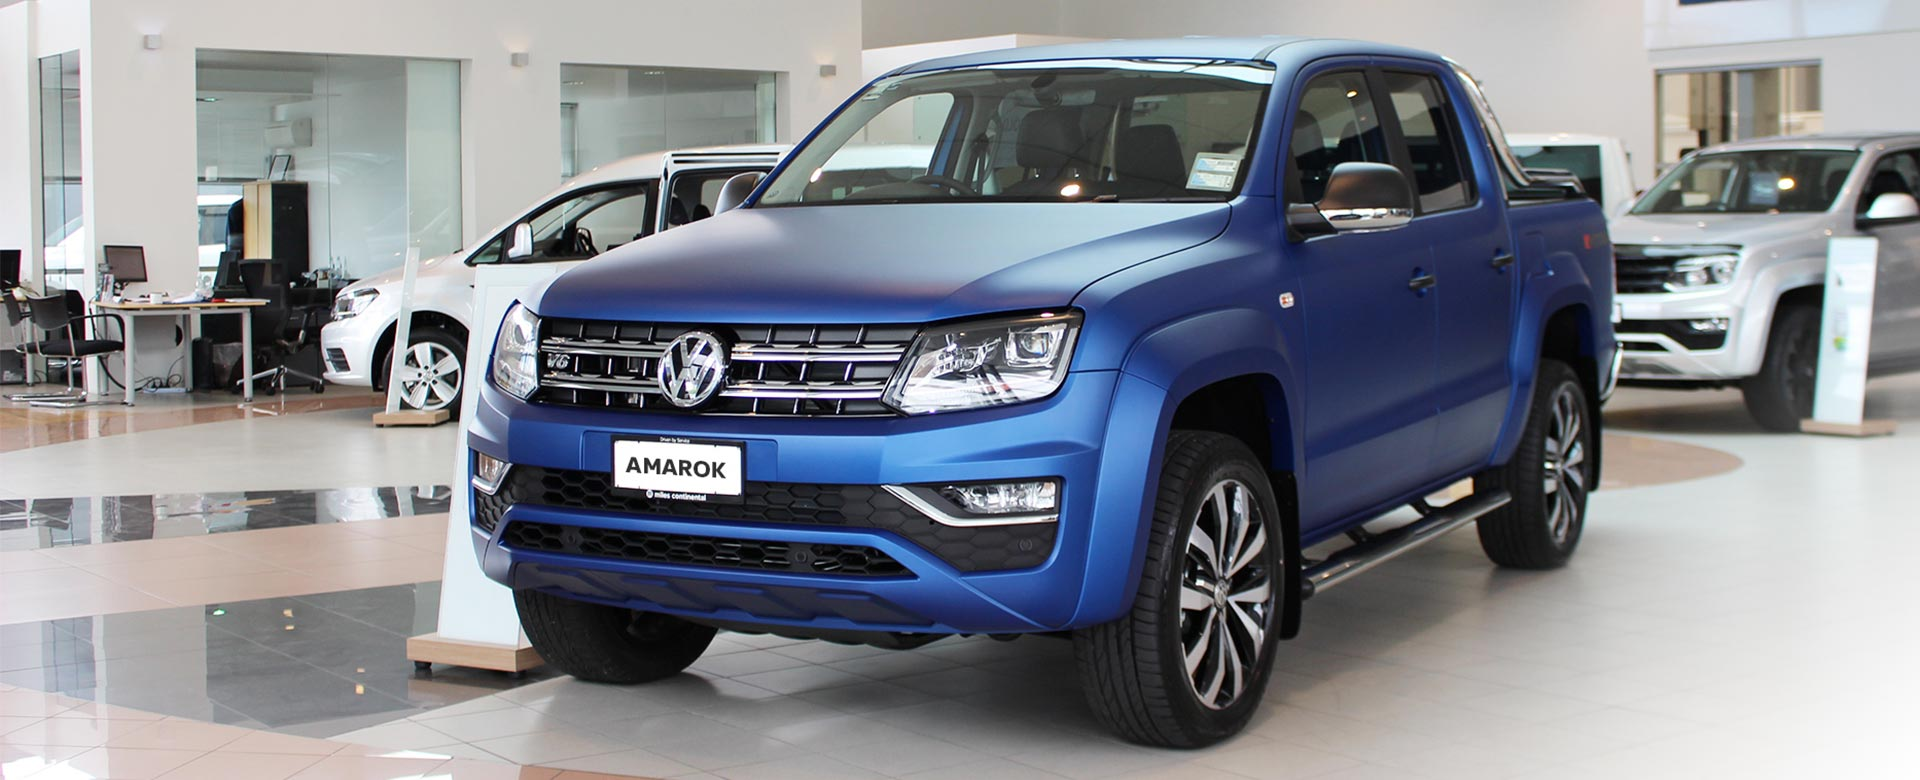 Amarok in Matte Paint Finish